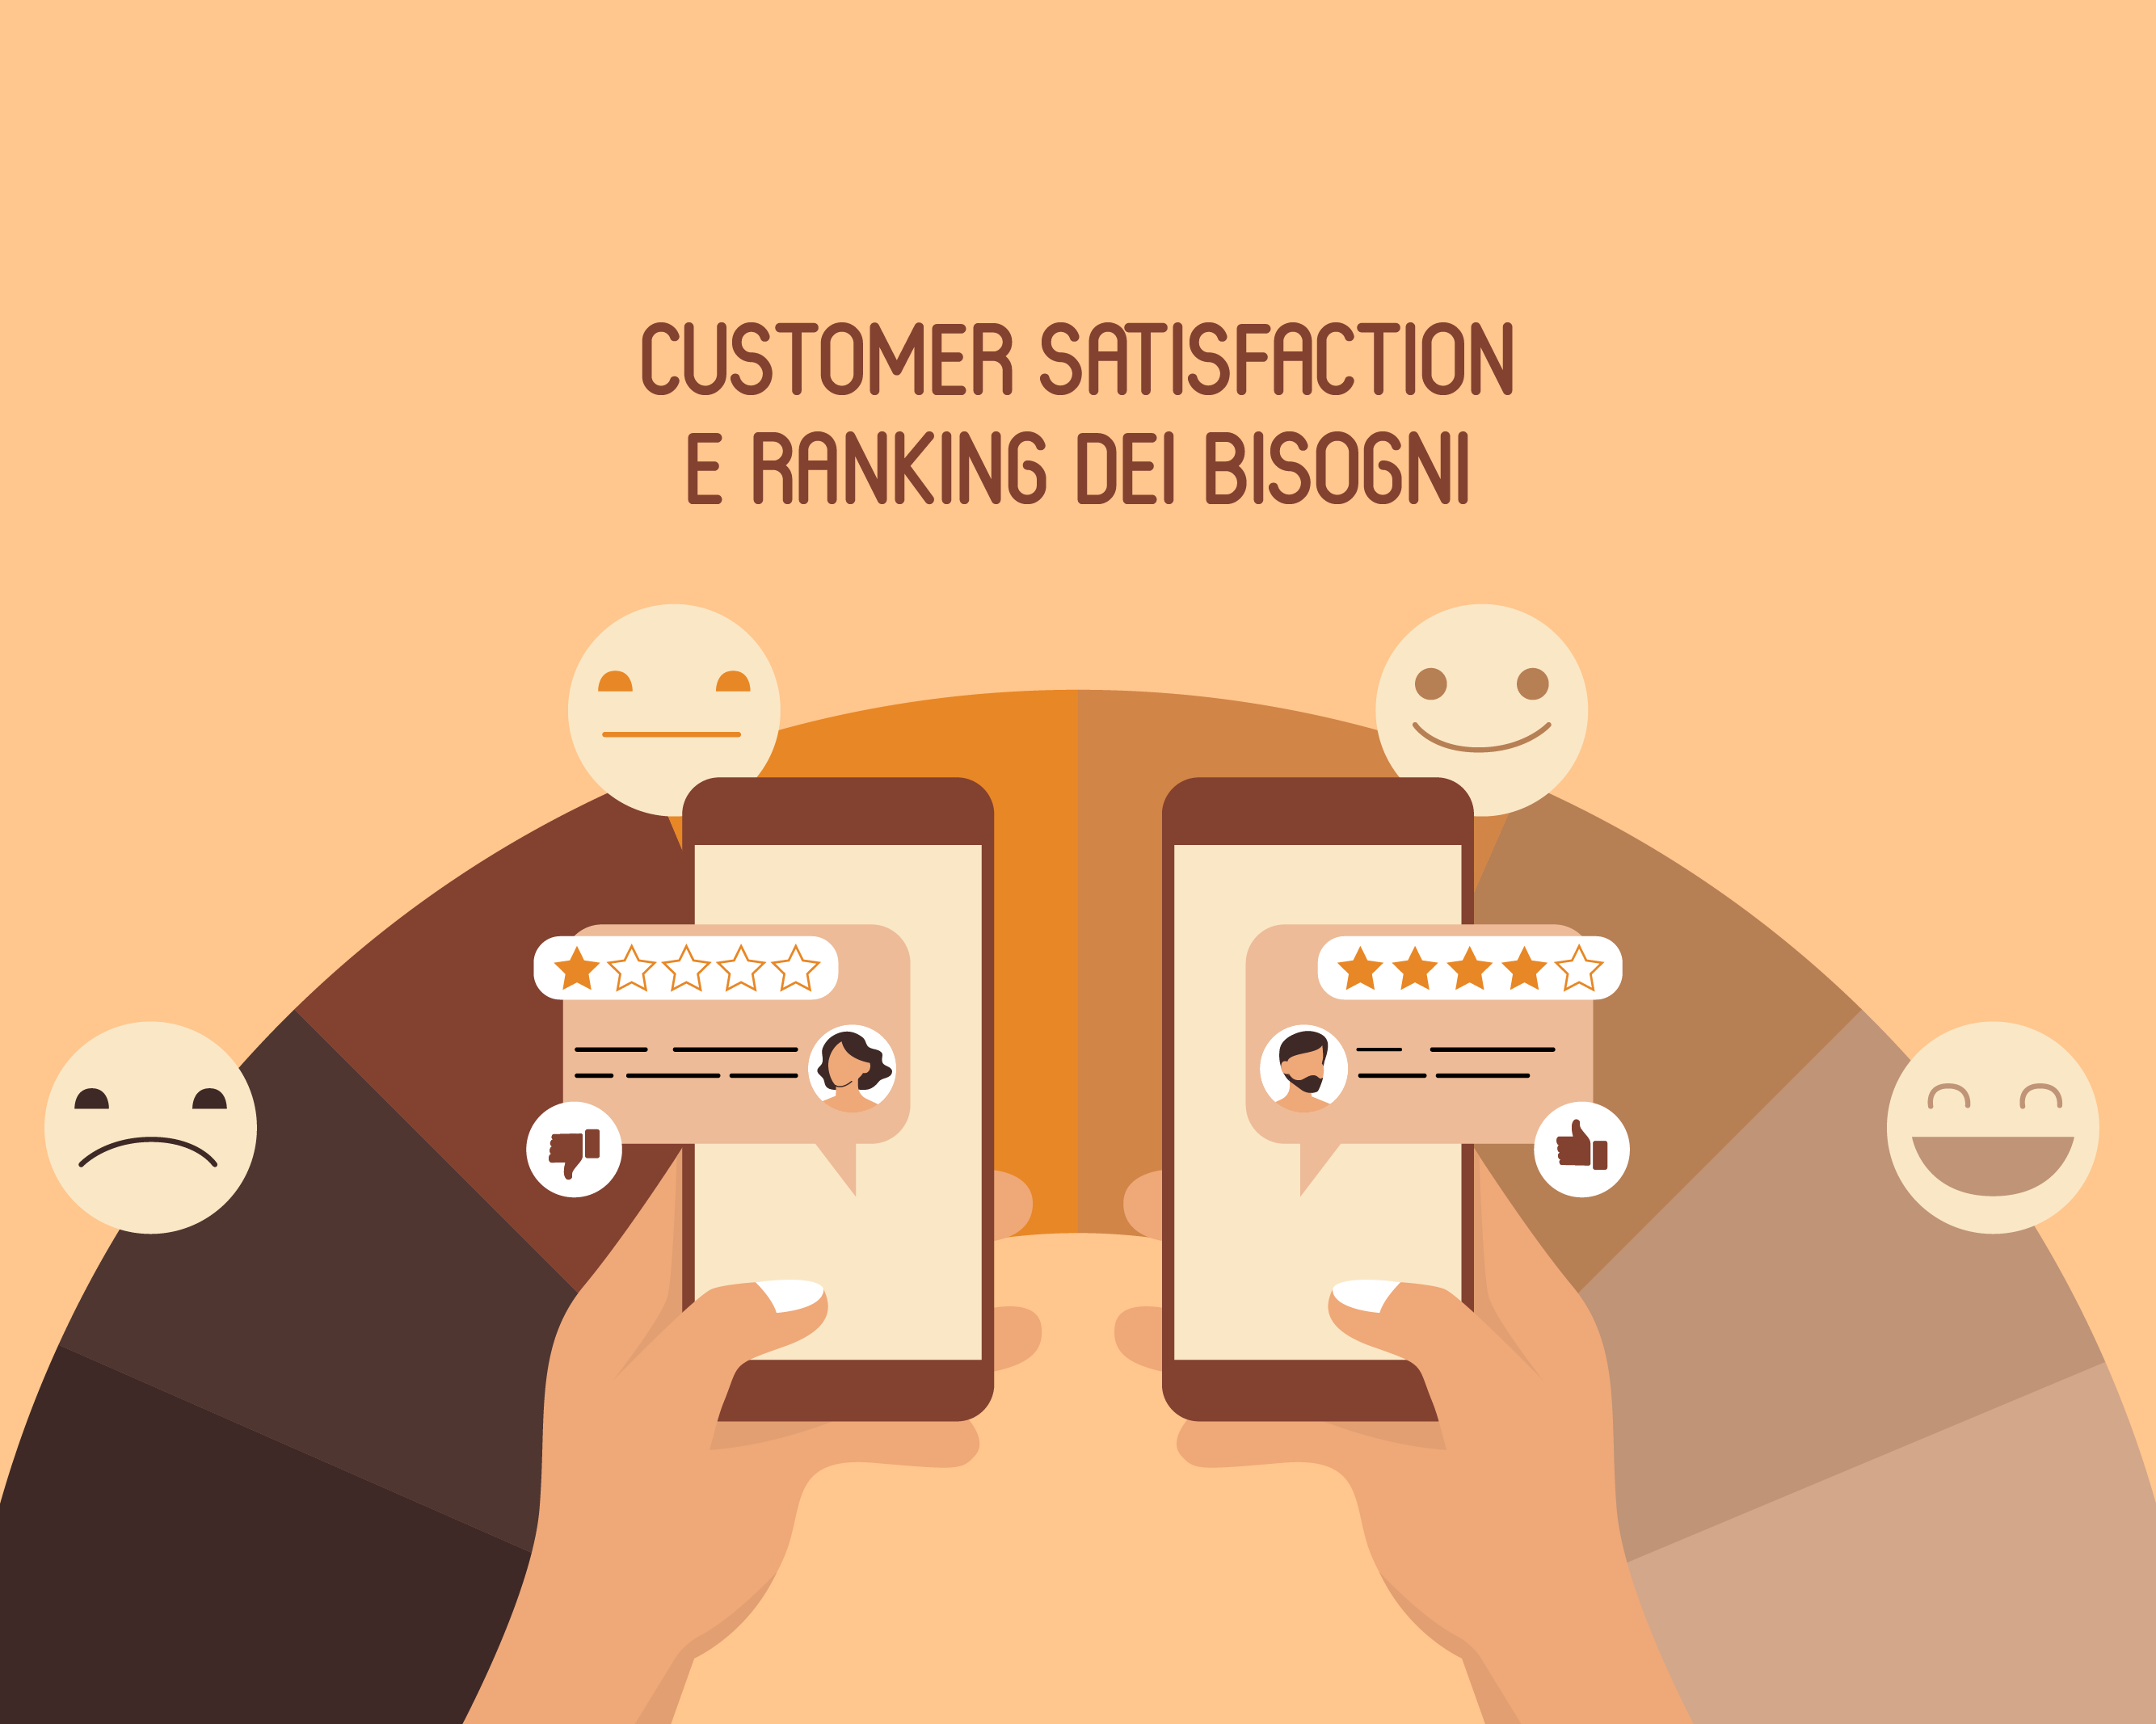 Customer Satisfaction e Ranking dei Bisogni